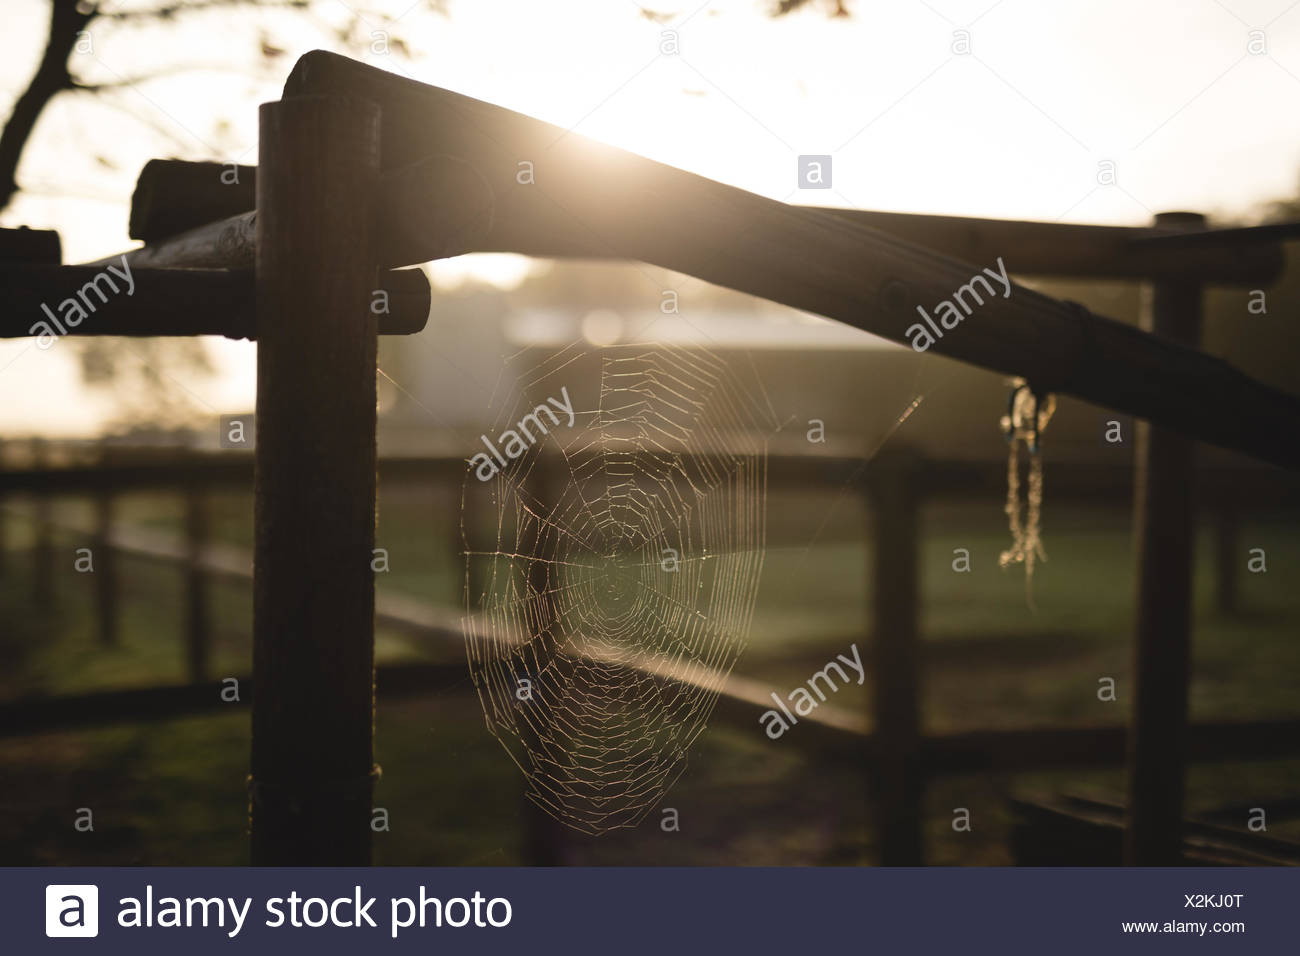 Close-up of spider web on wooden fence at barn - Stock Image